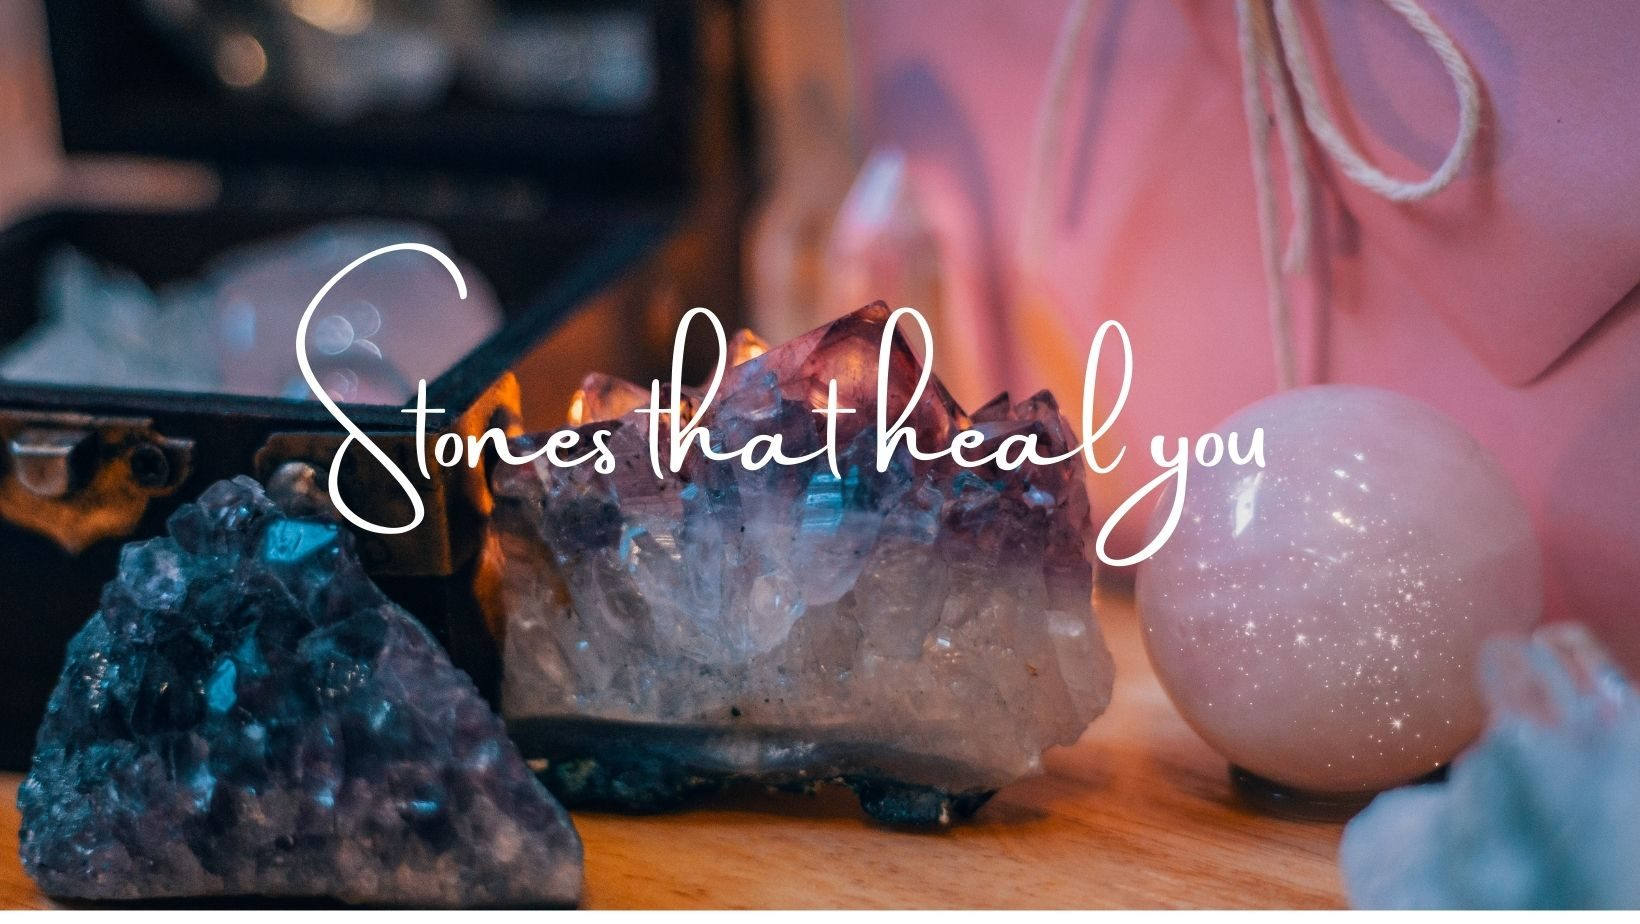 Stones that heal you